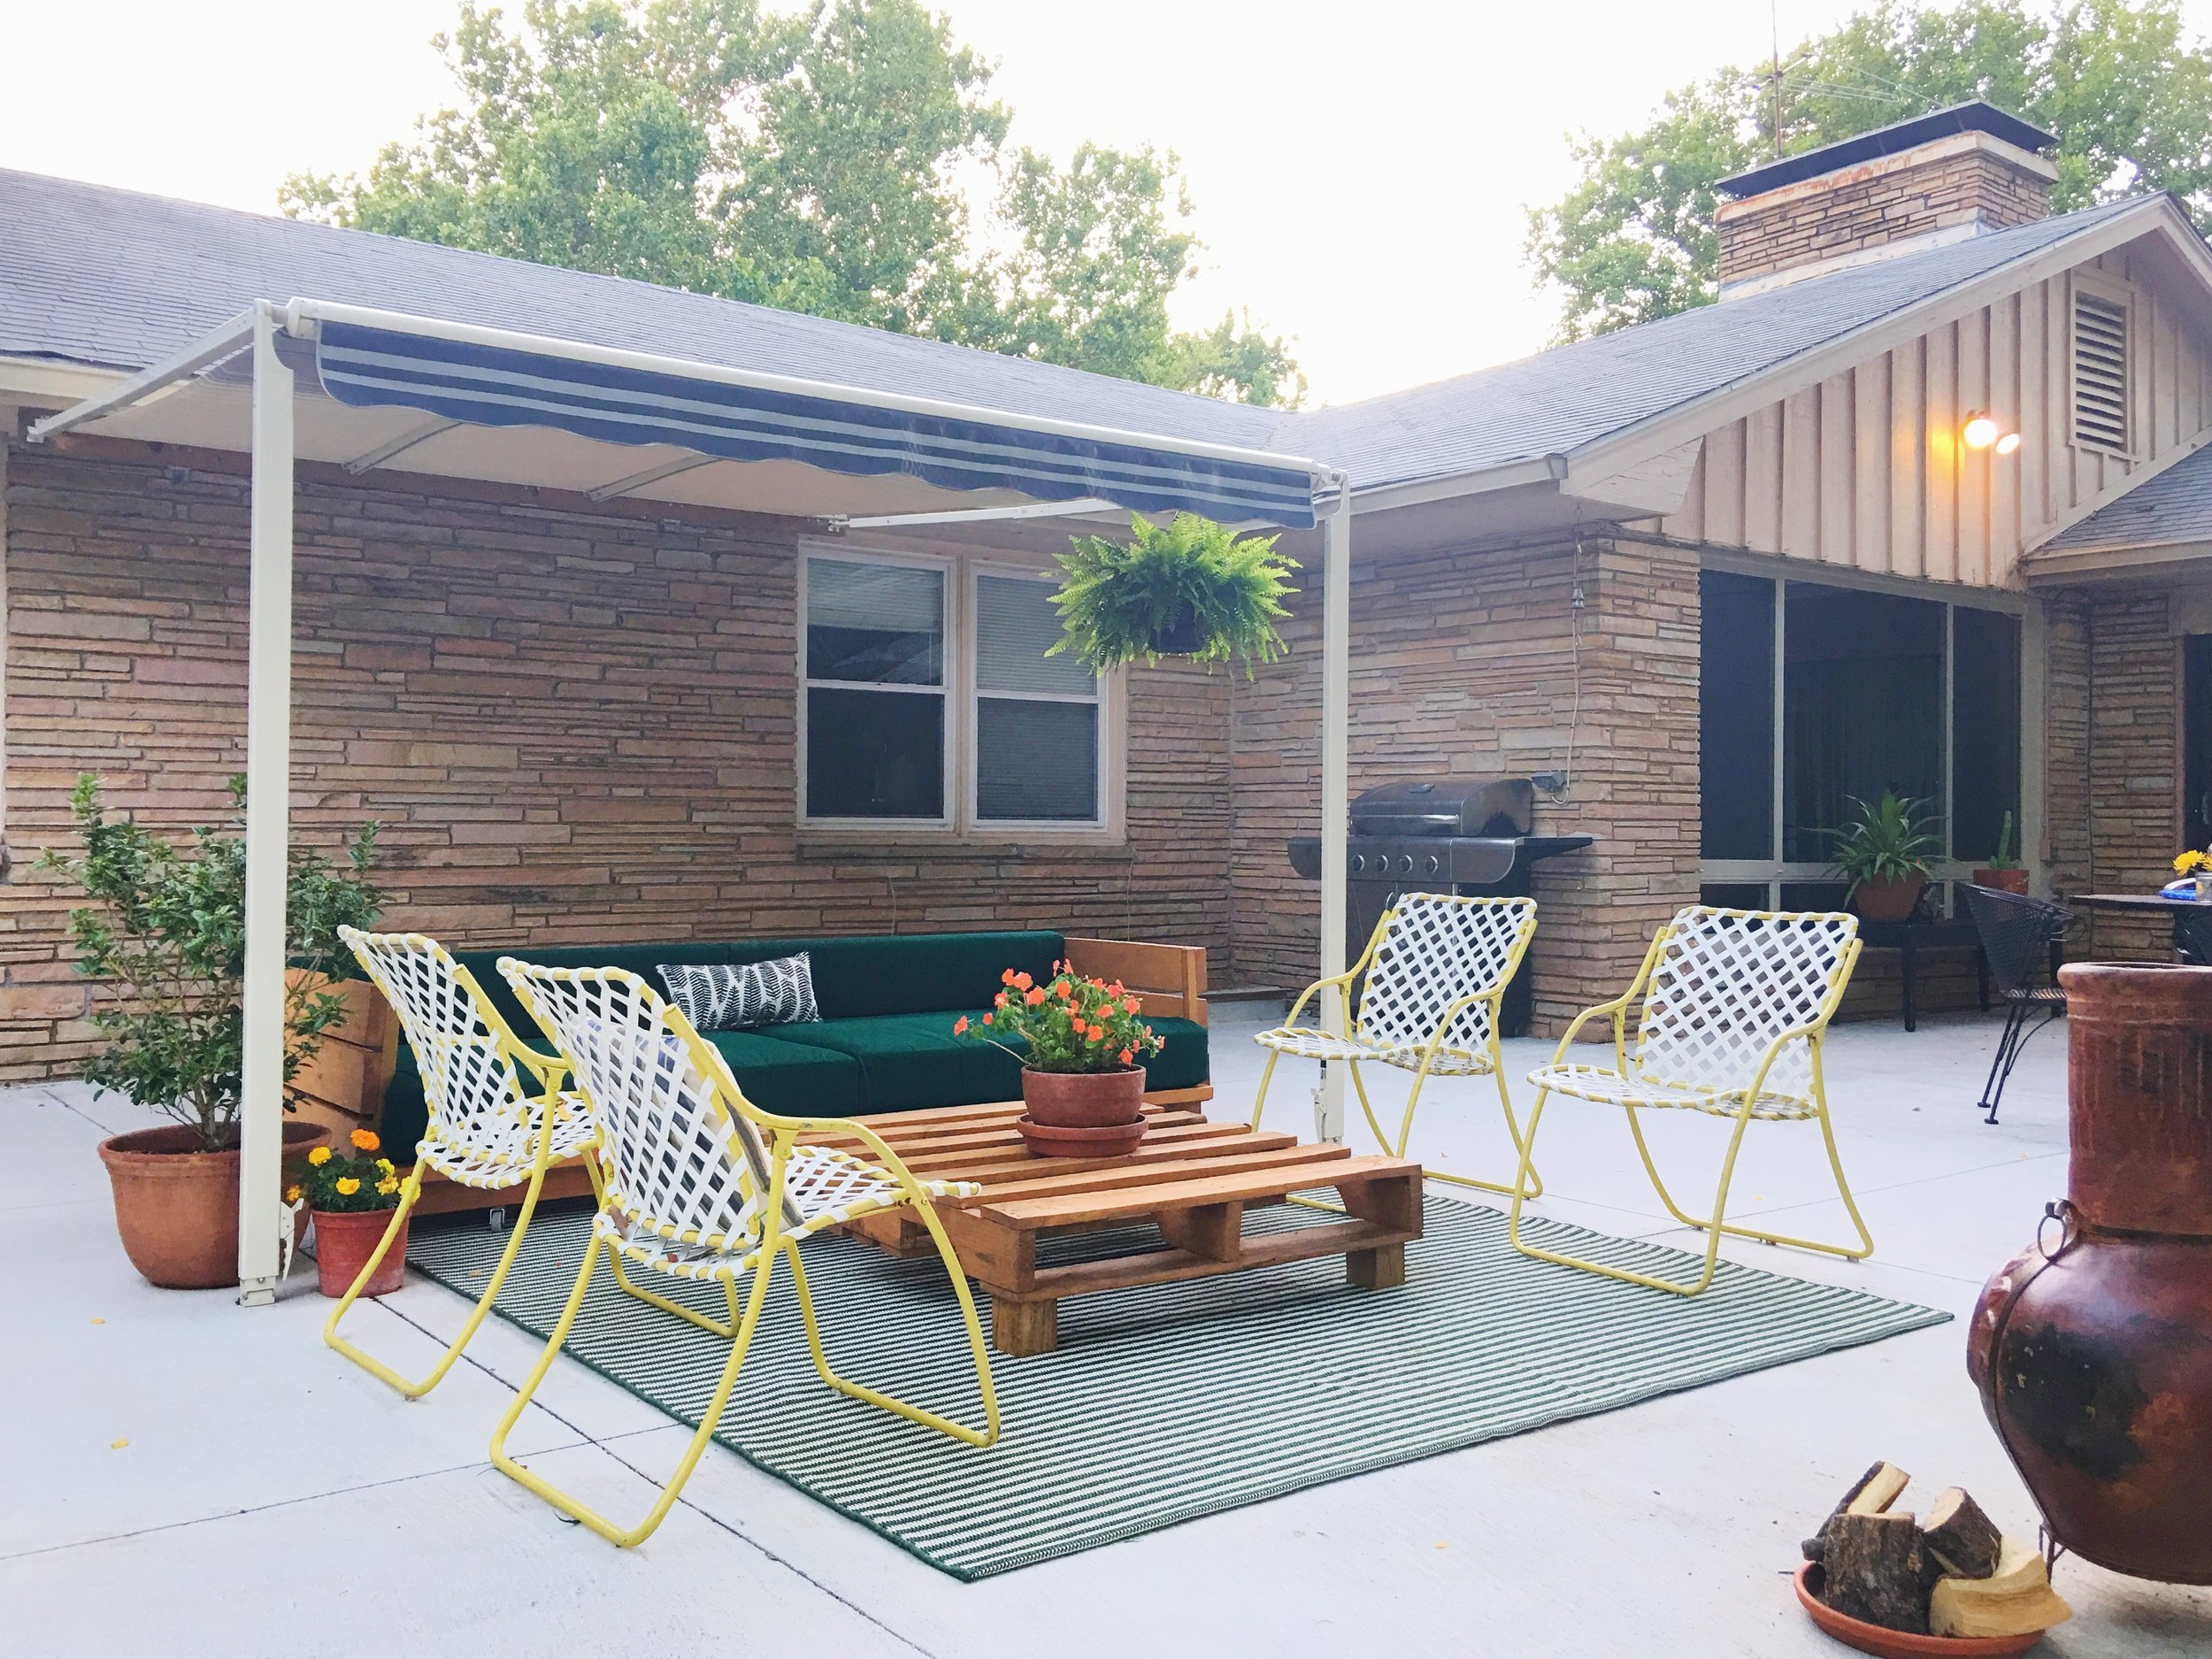 See the  full story  on Palmer's patio makeover!